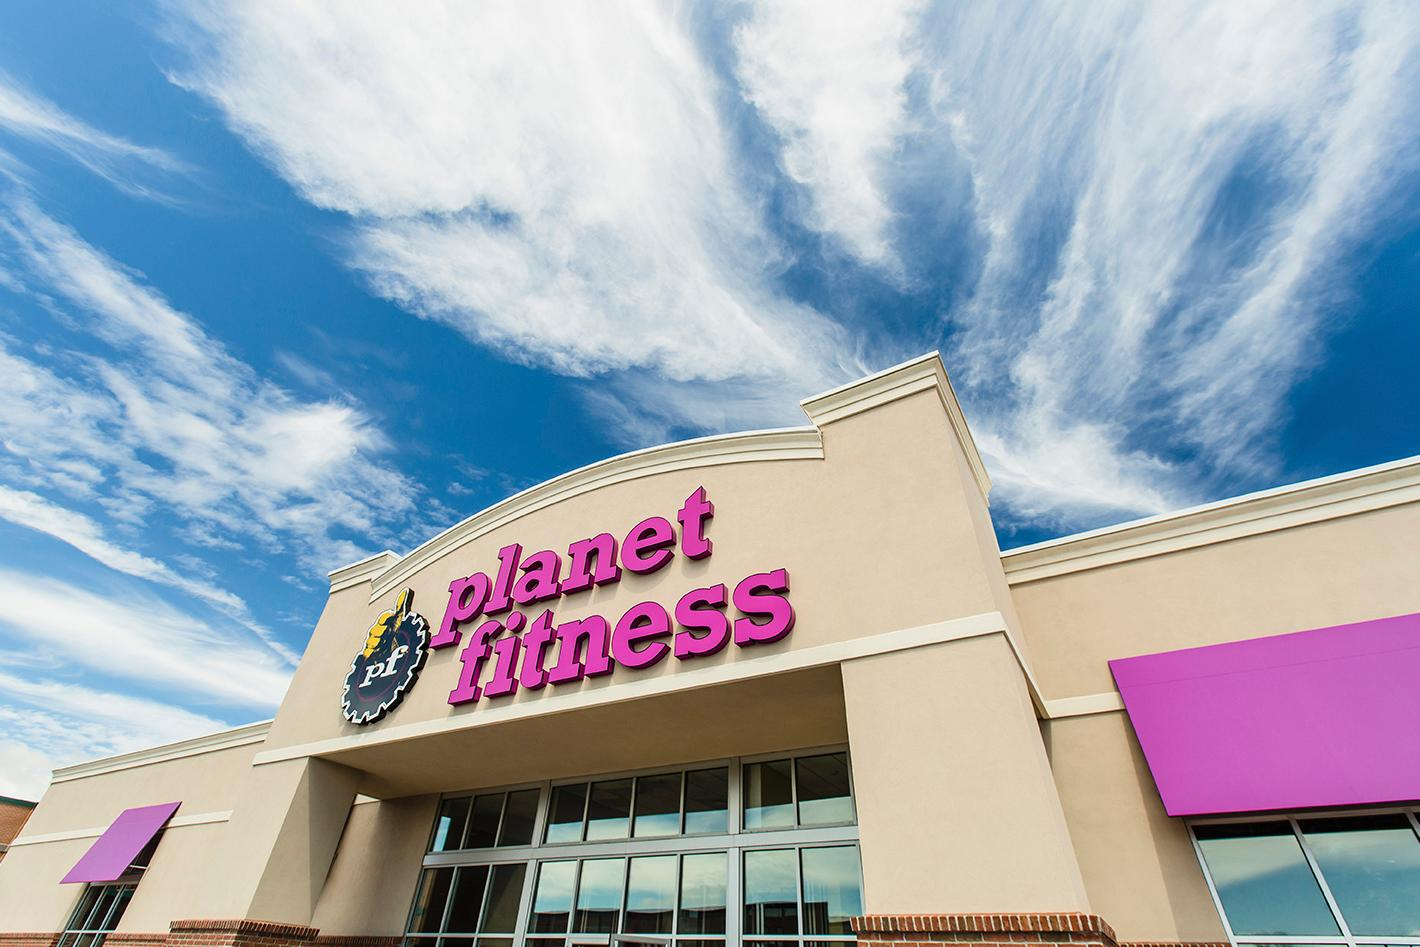 Planet Fitness has more than 10 million members and over 1,300 locations